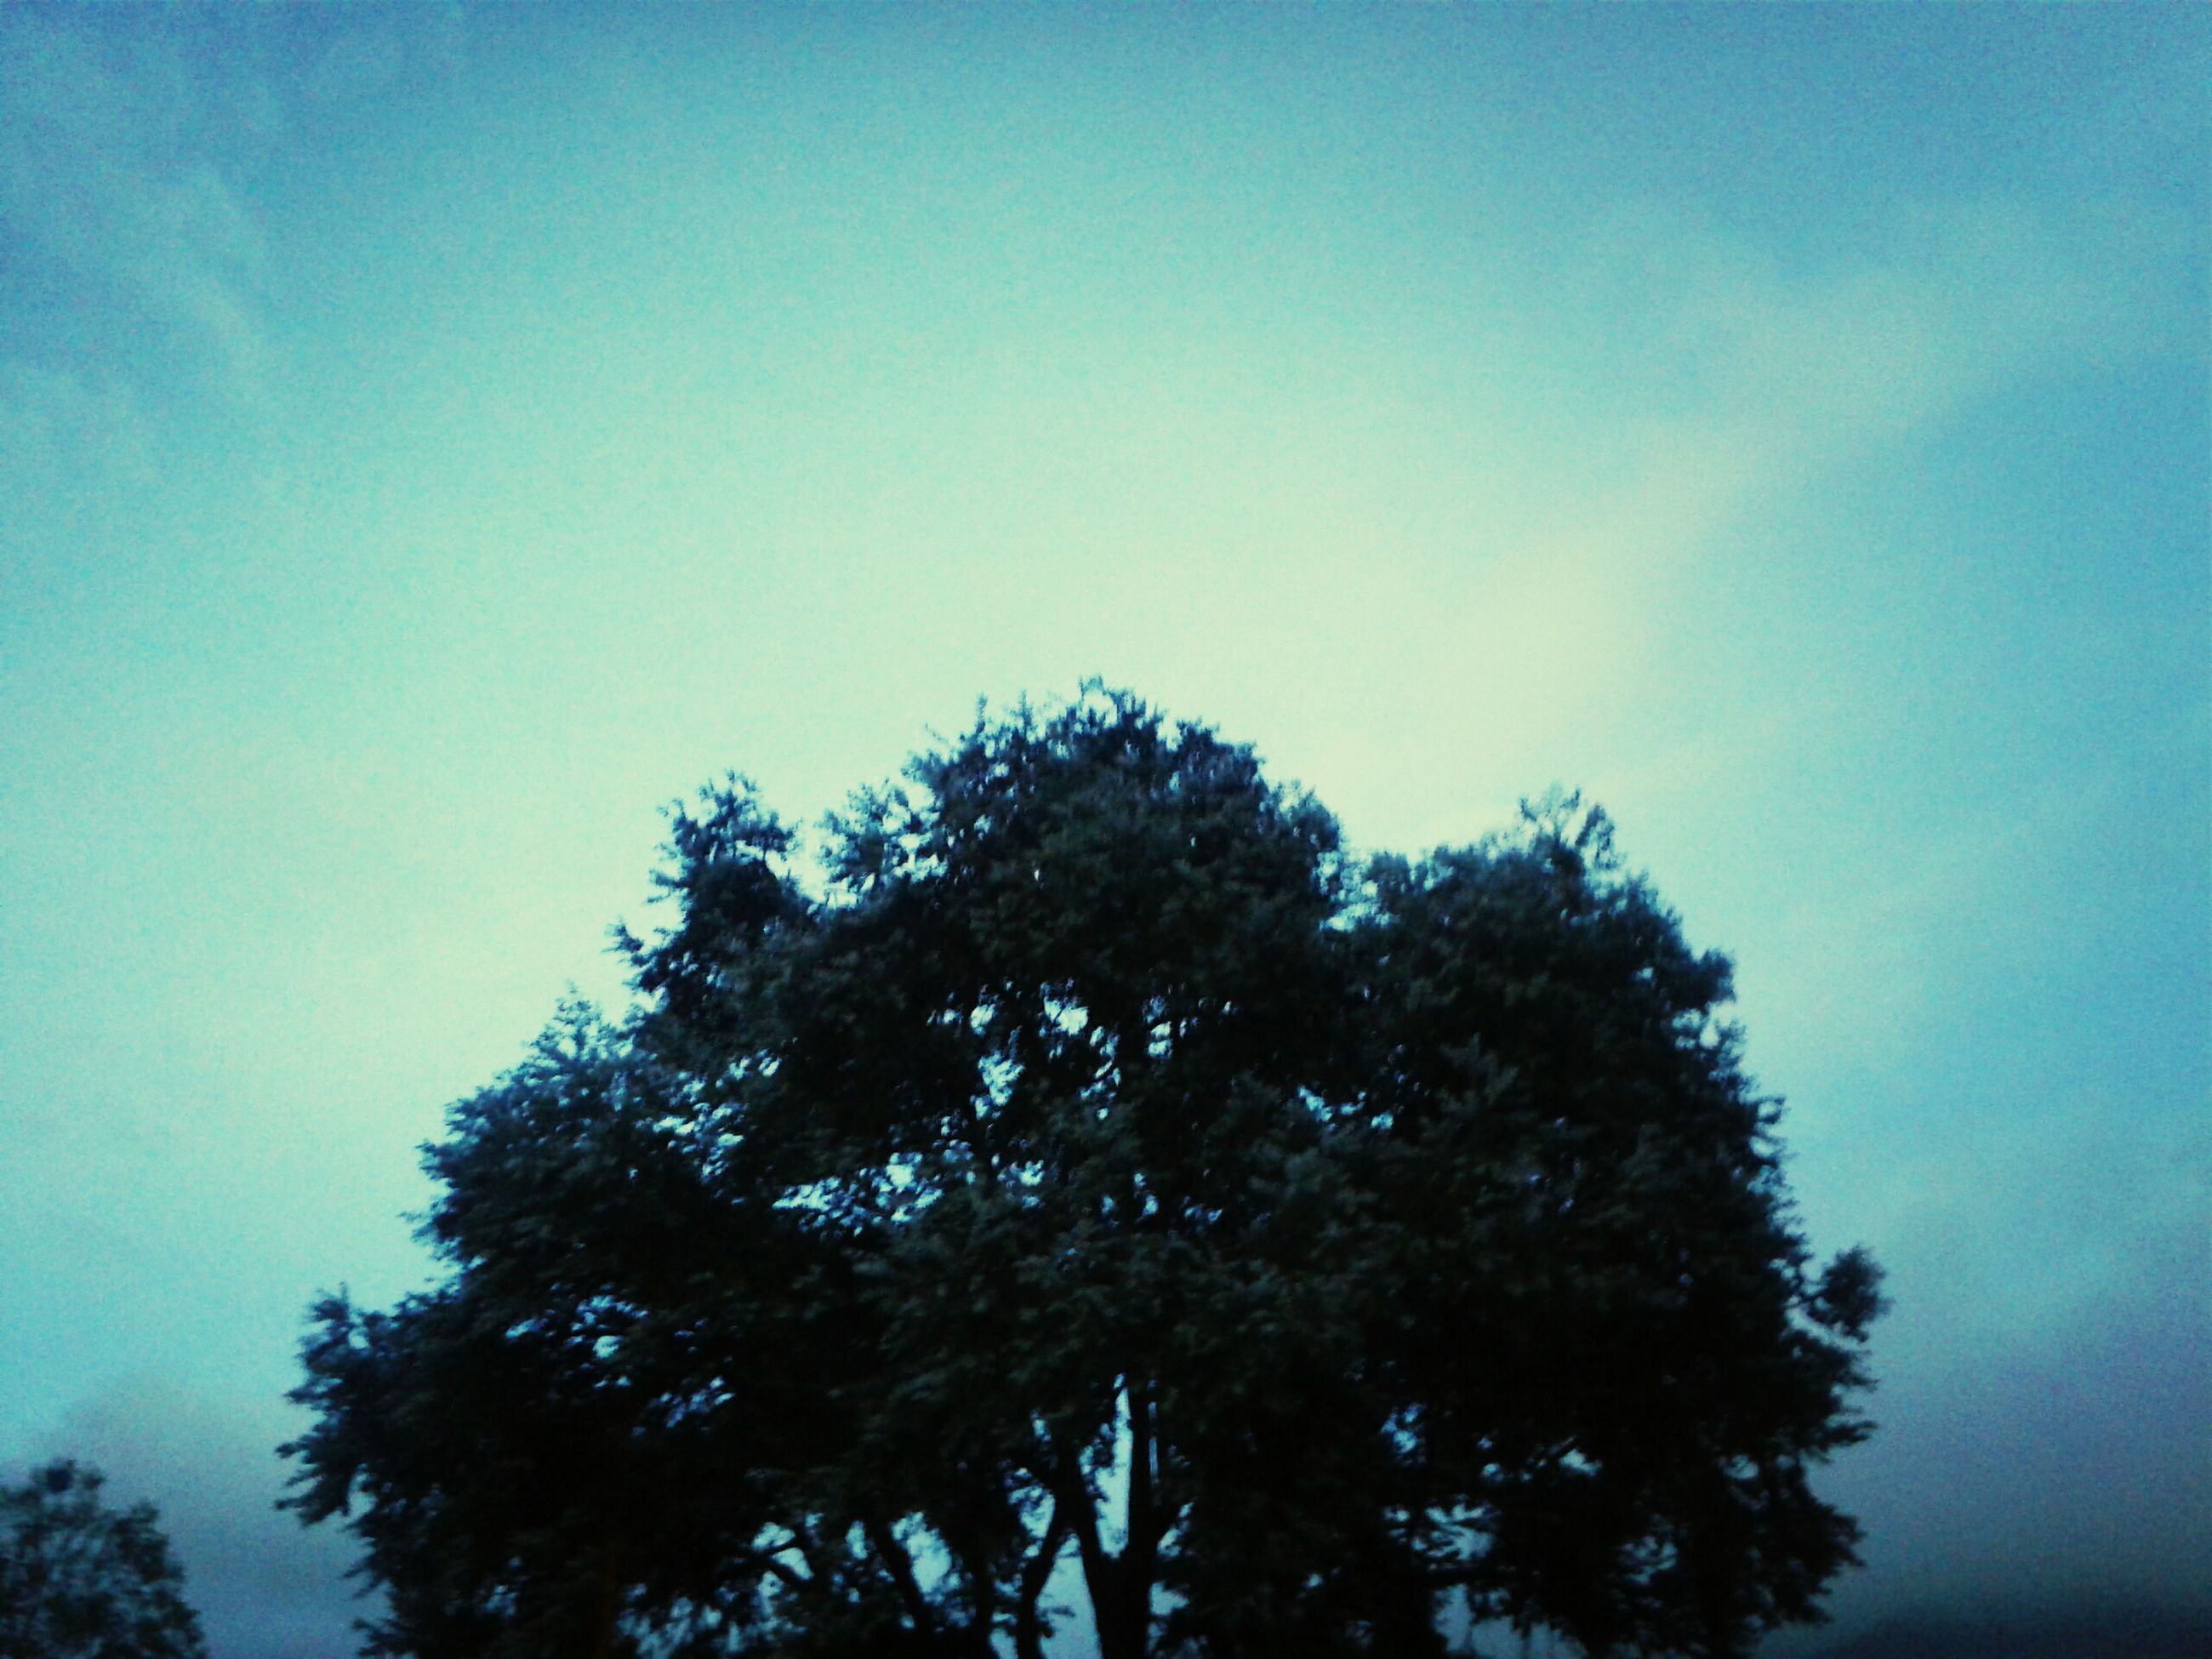 tree, low angle view, blue, tranquility, growth, beauty in nature, clear sky, nature, sky, scenics, tranquil scene, copy space, branch, treetop, high section, silhouette, outdoors, no people, day, idyllic